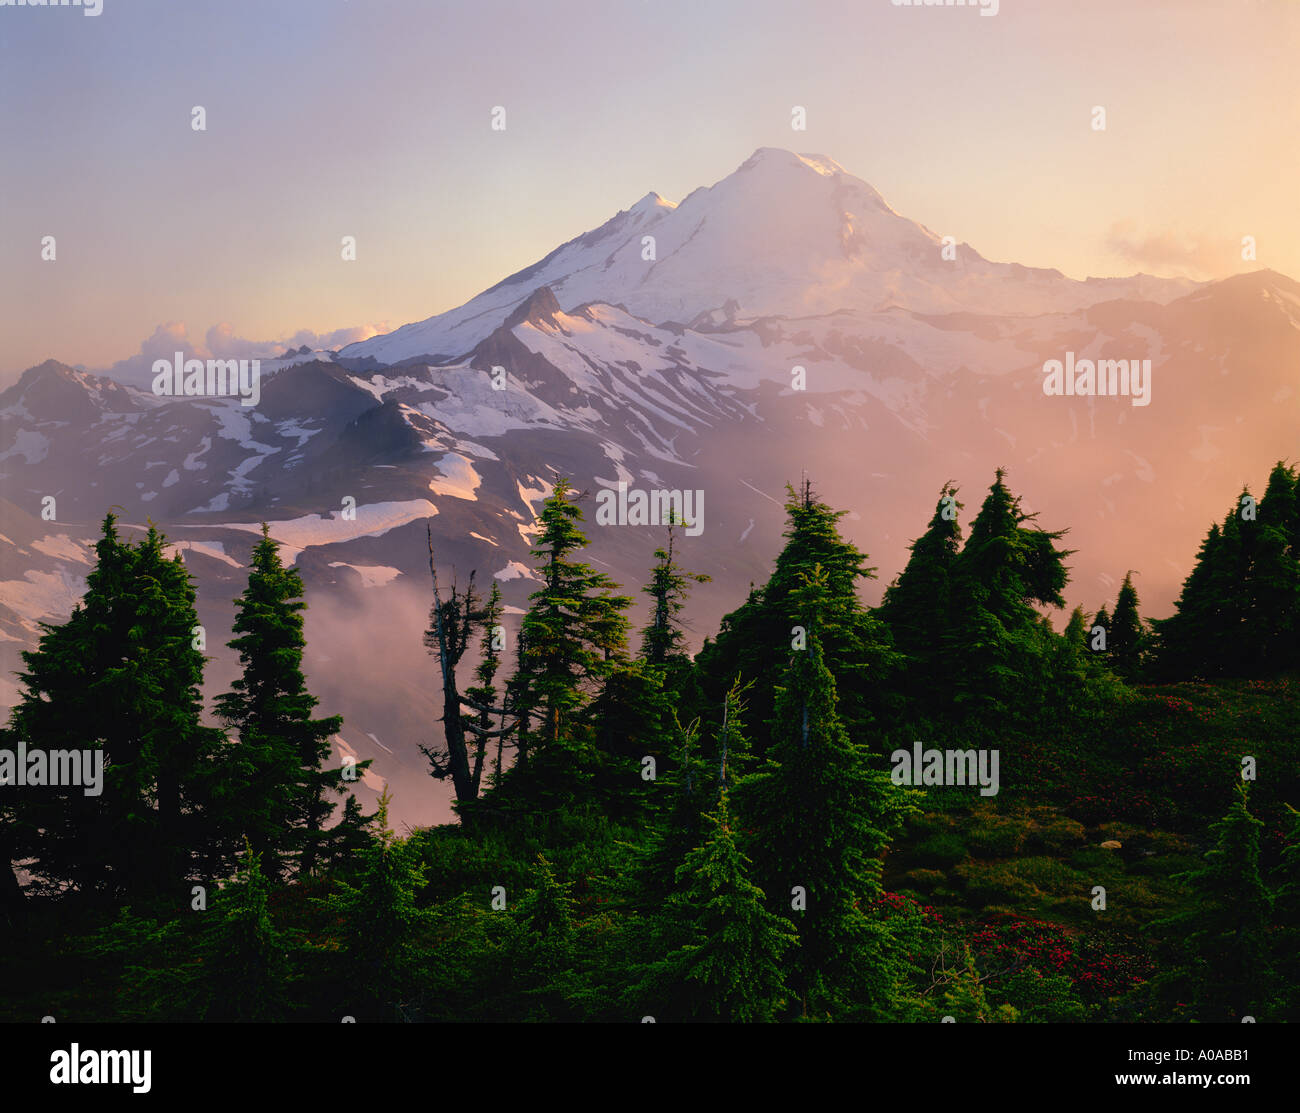 Mt Baker through the mist at sunset from Table Mountain - Stock Image